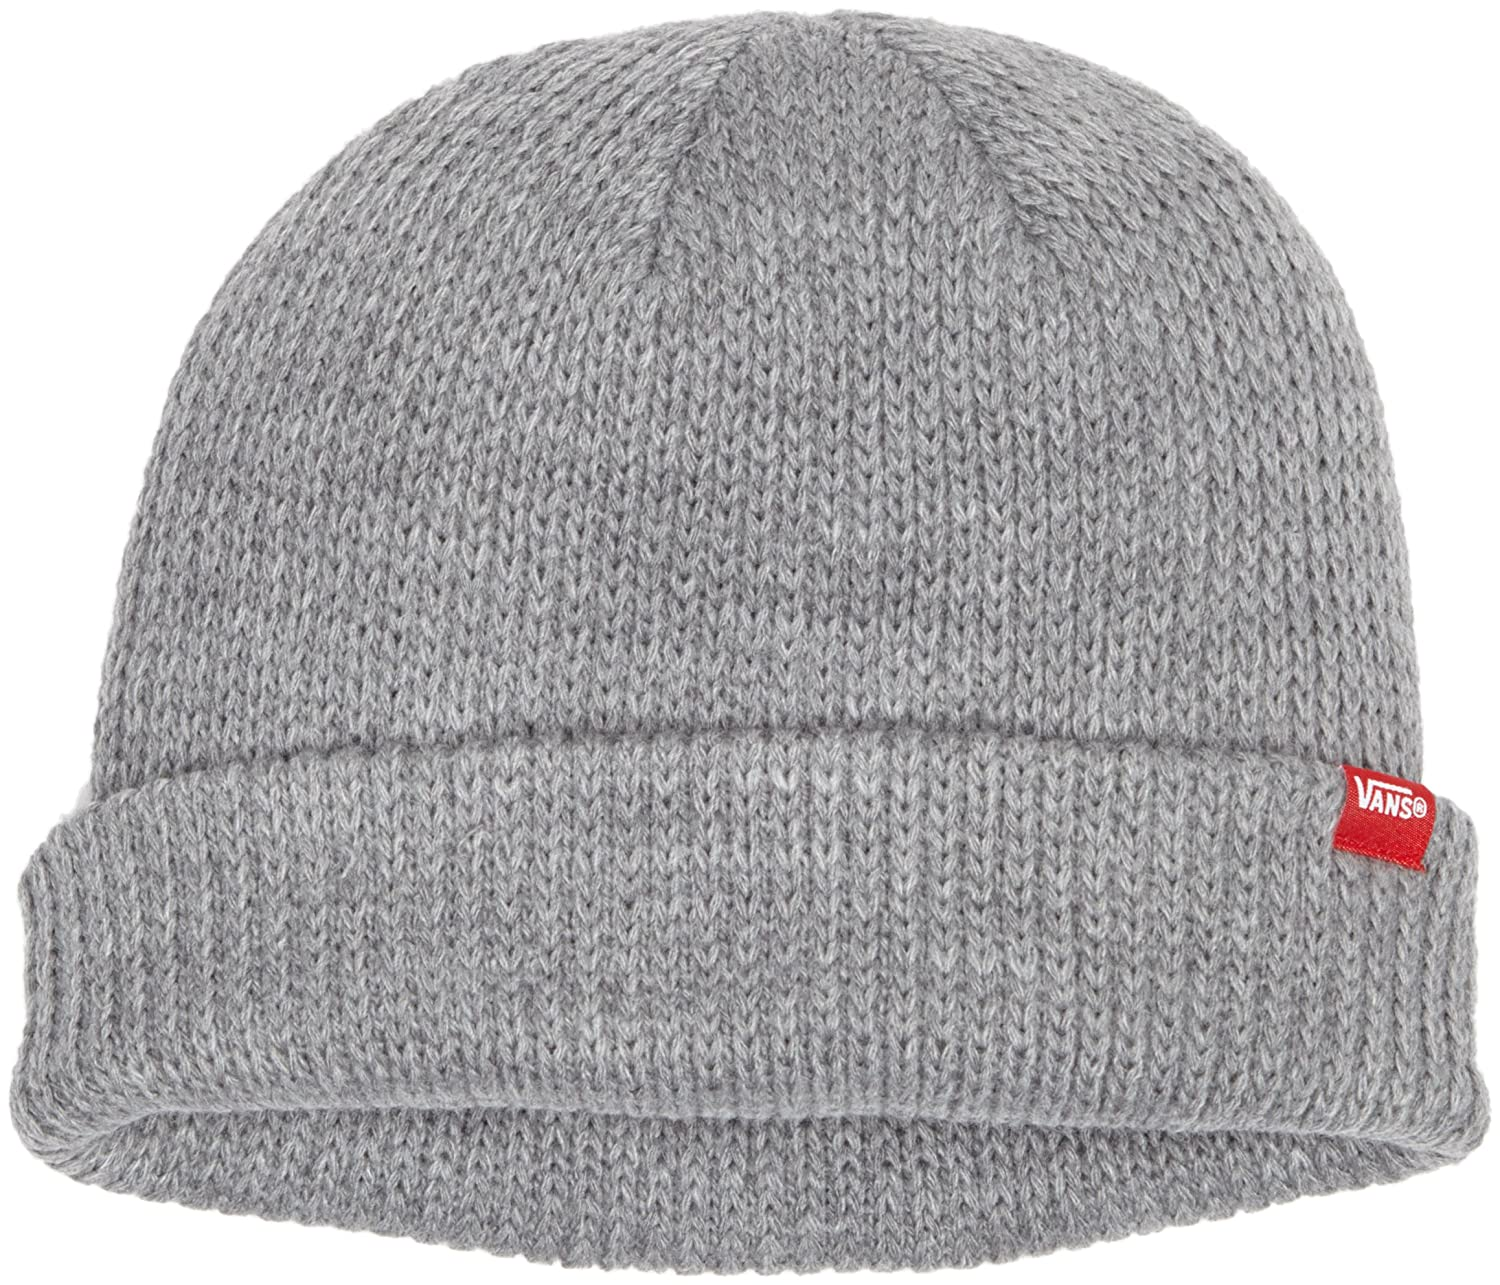 67c47a28f655f Vans Men s Core Basics Beanie Hat